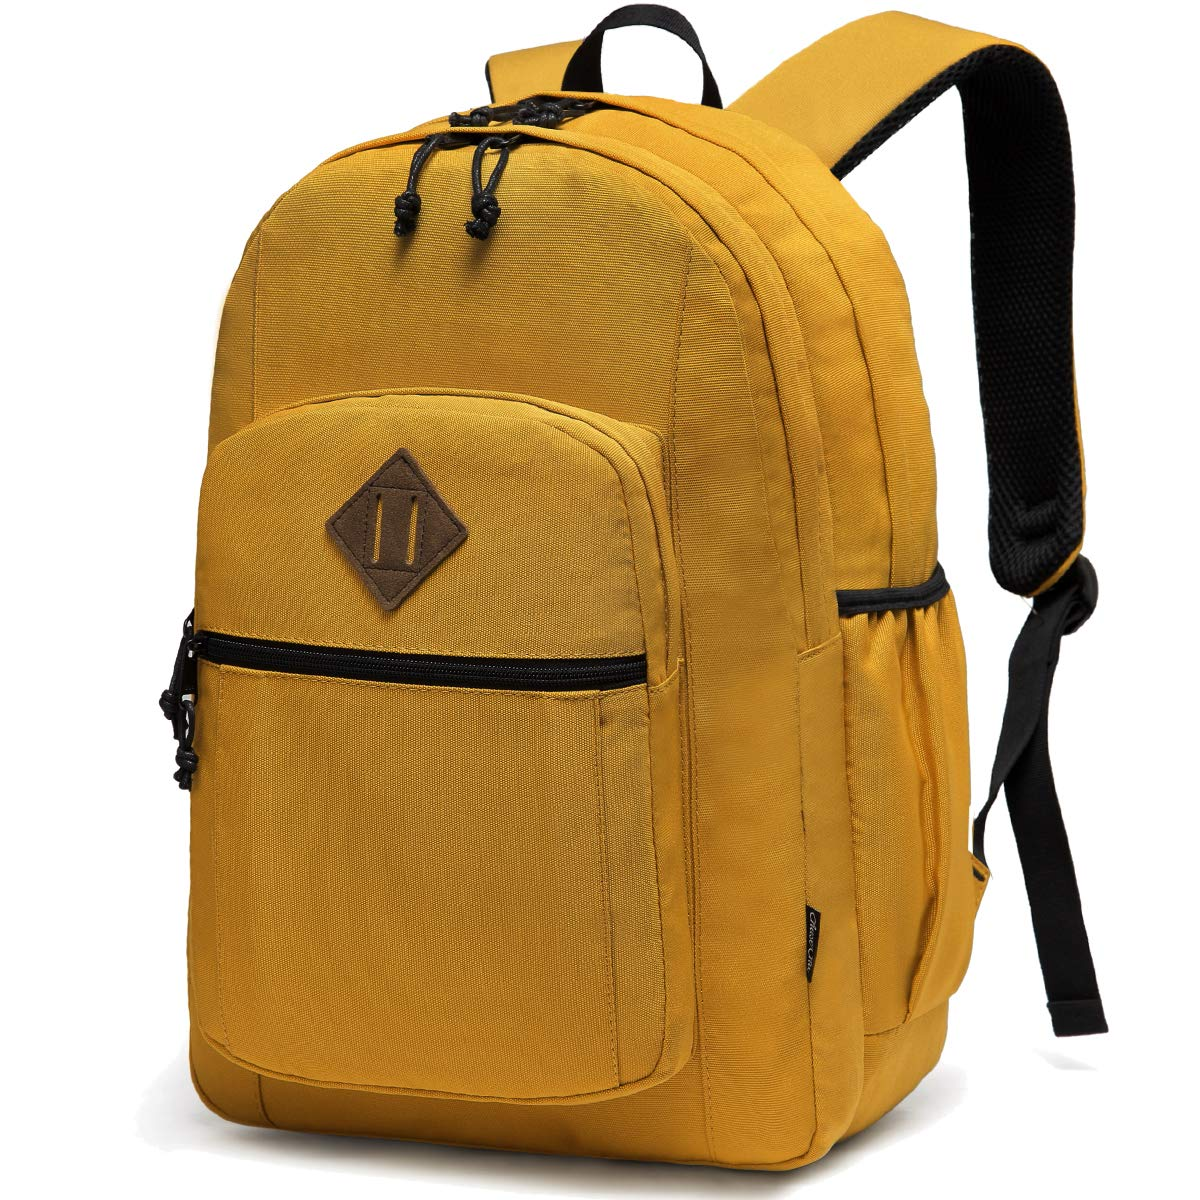 School Backpack for Teens,Chasechic Water-Resistant Classic Lightweight College Bookbag for Women Travel Rucksack Yellow by Chase Chic